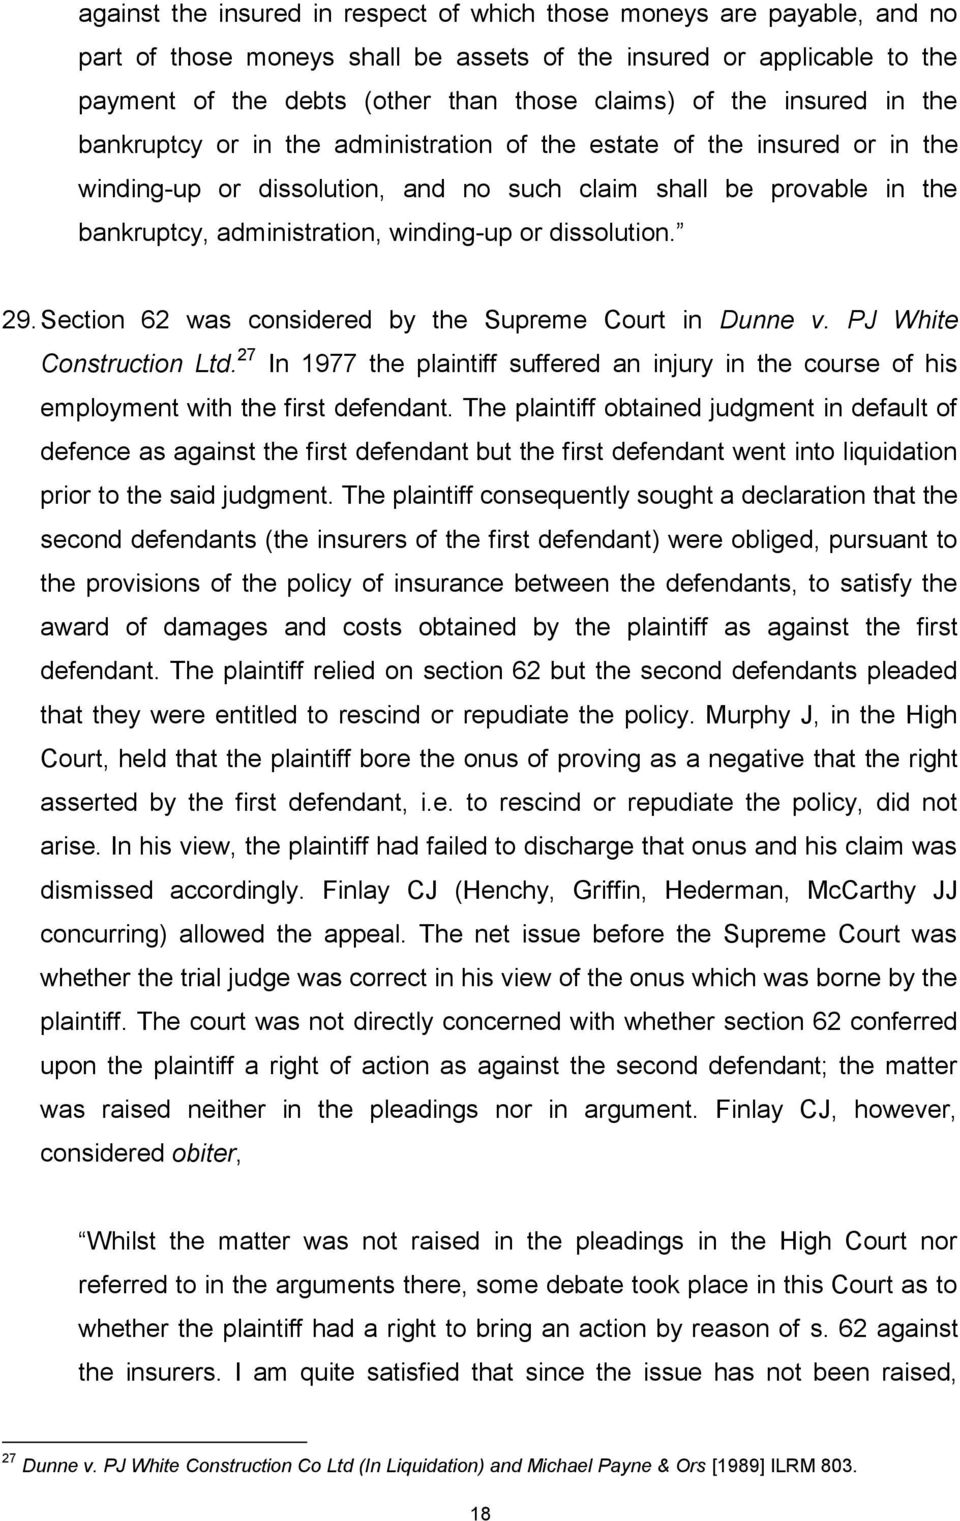 or dissolution. 29. Section 62 was considered by the Supreme Court in Dunne v. PJ White Construction Ltd.